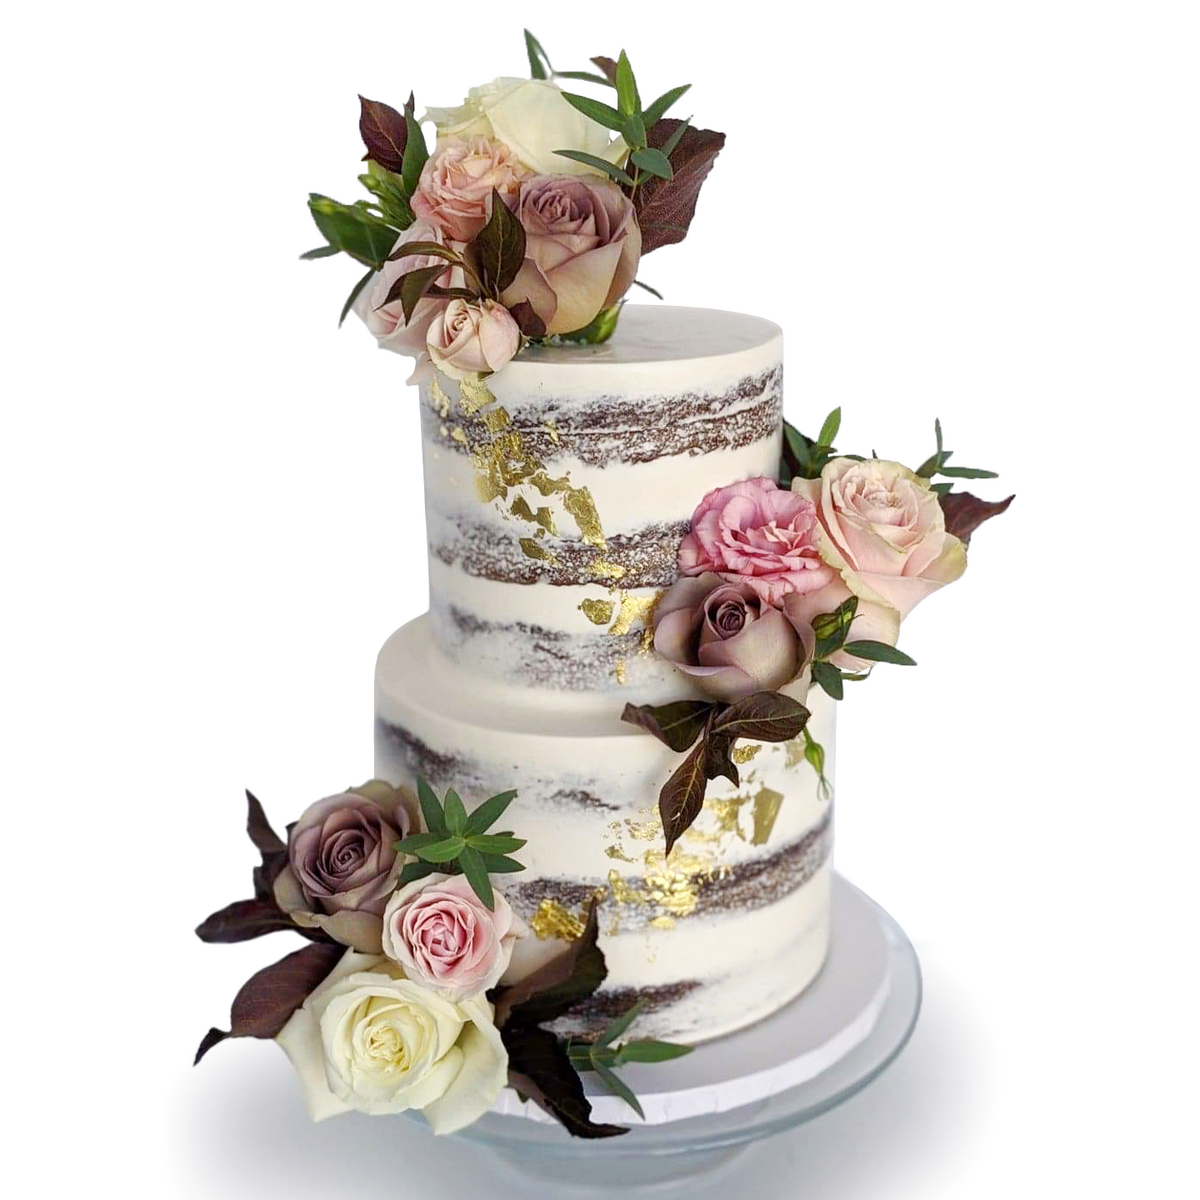 Whippt Kitchen - wedding cake Aug 2020 2